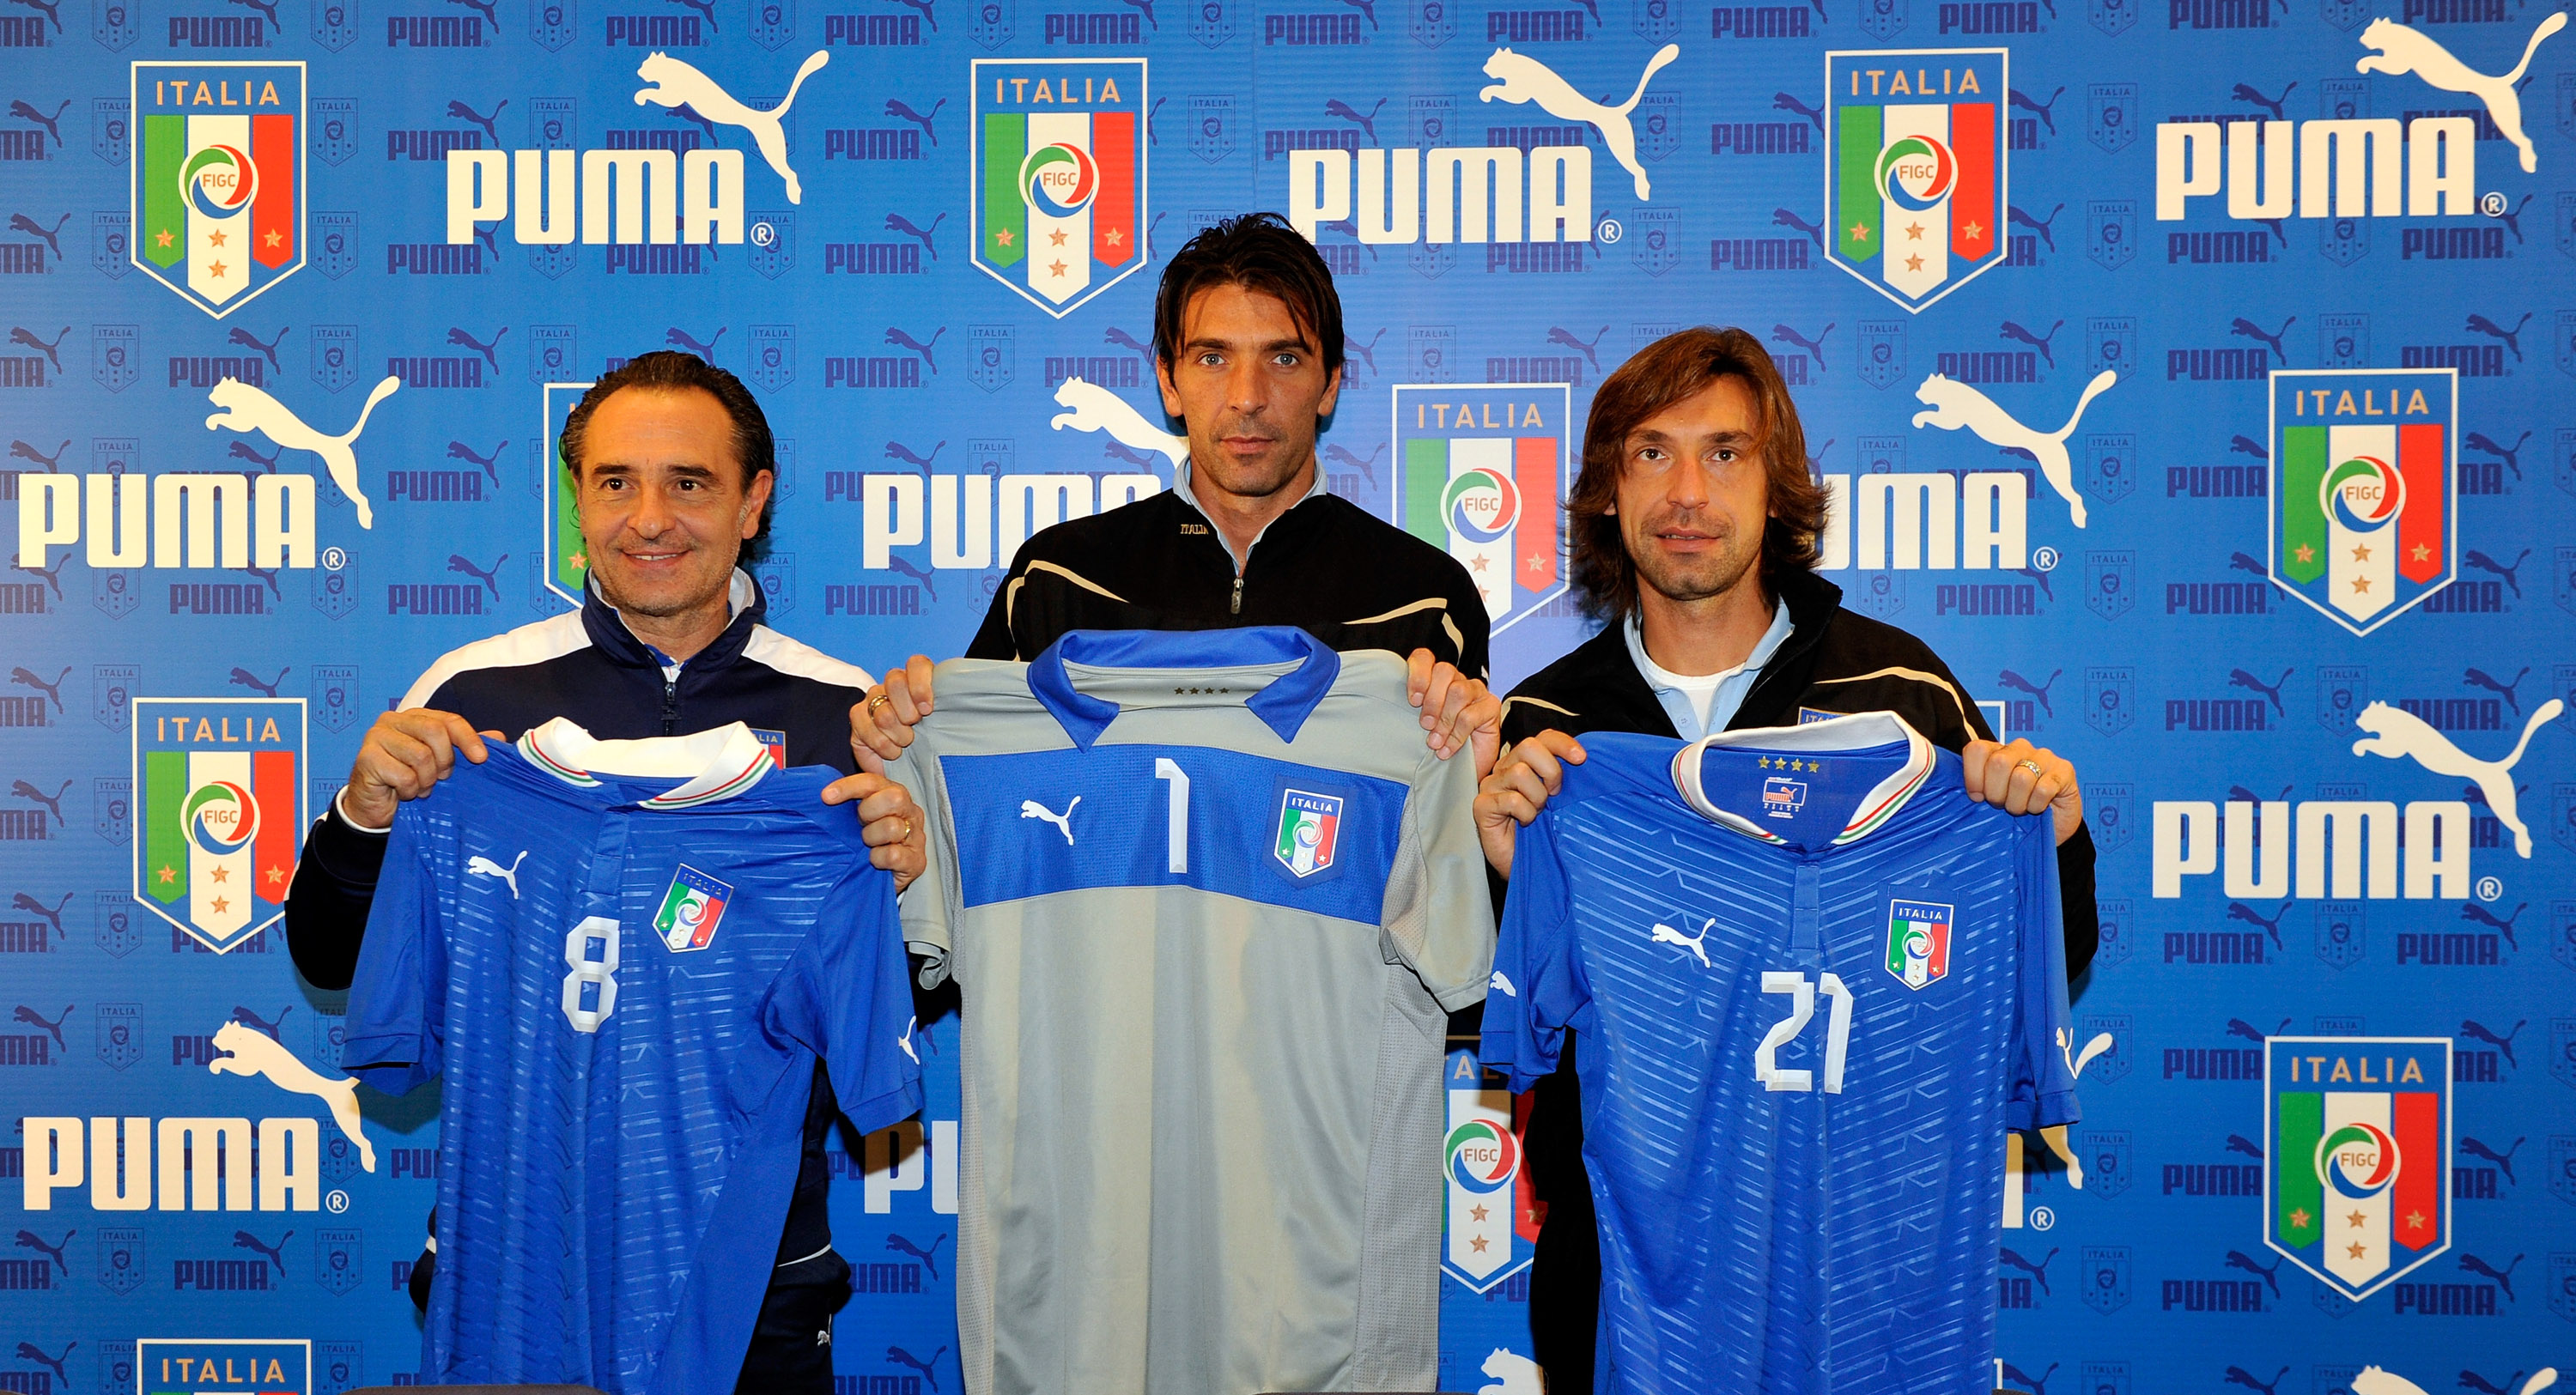 Sport-locker.net can reveal that PUMA have launched the new official home  kit of the Italian National Football ... ca0b2d9cc